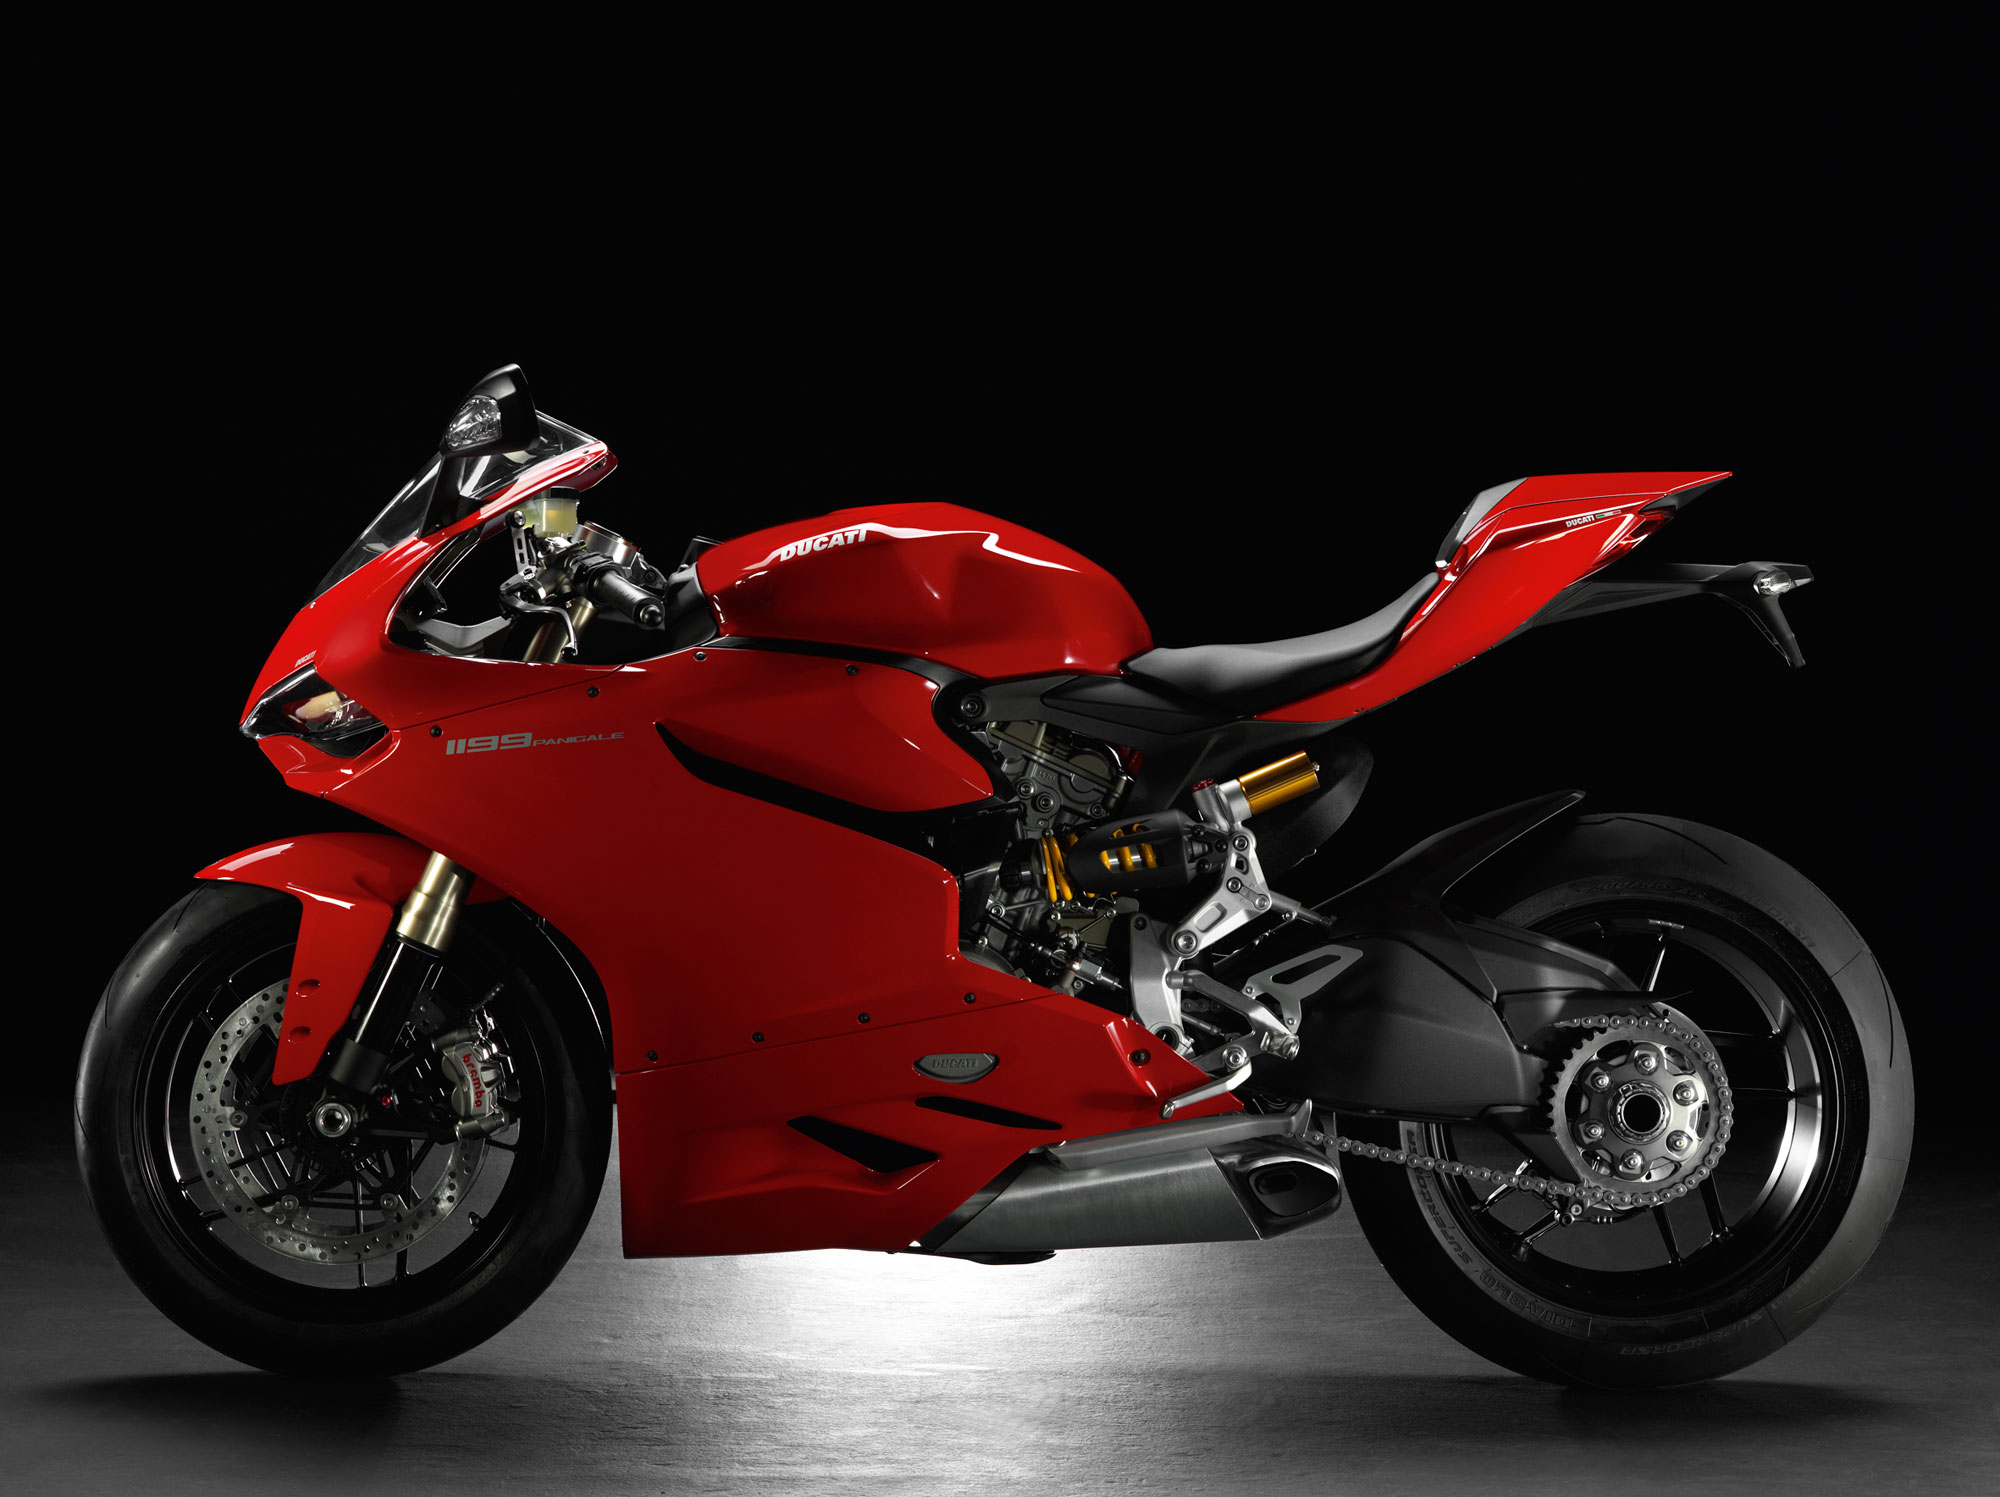 Ducati Superbike 1199 Panigale S 2013 wallpapers #13369